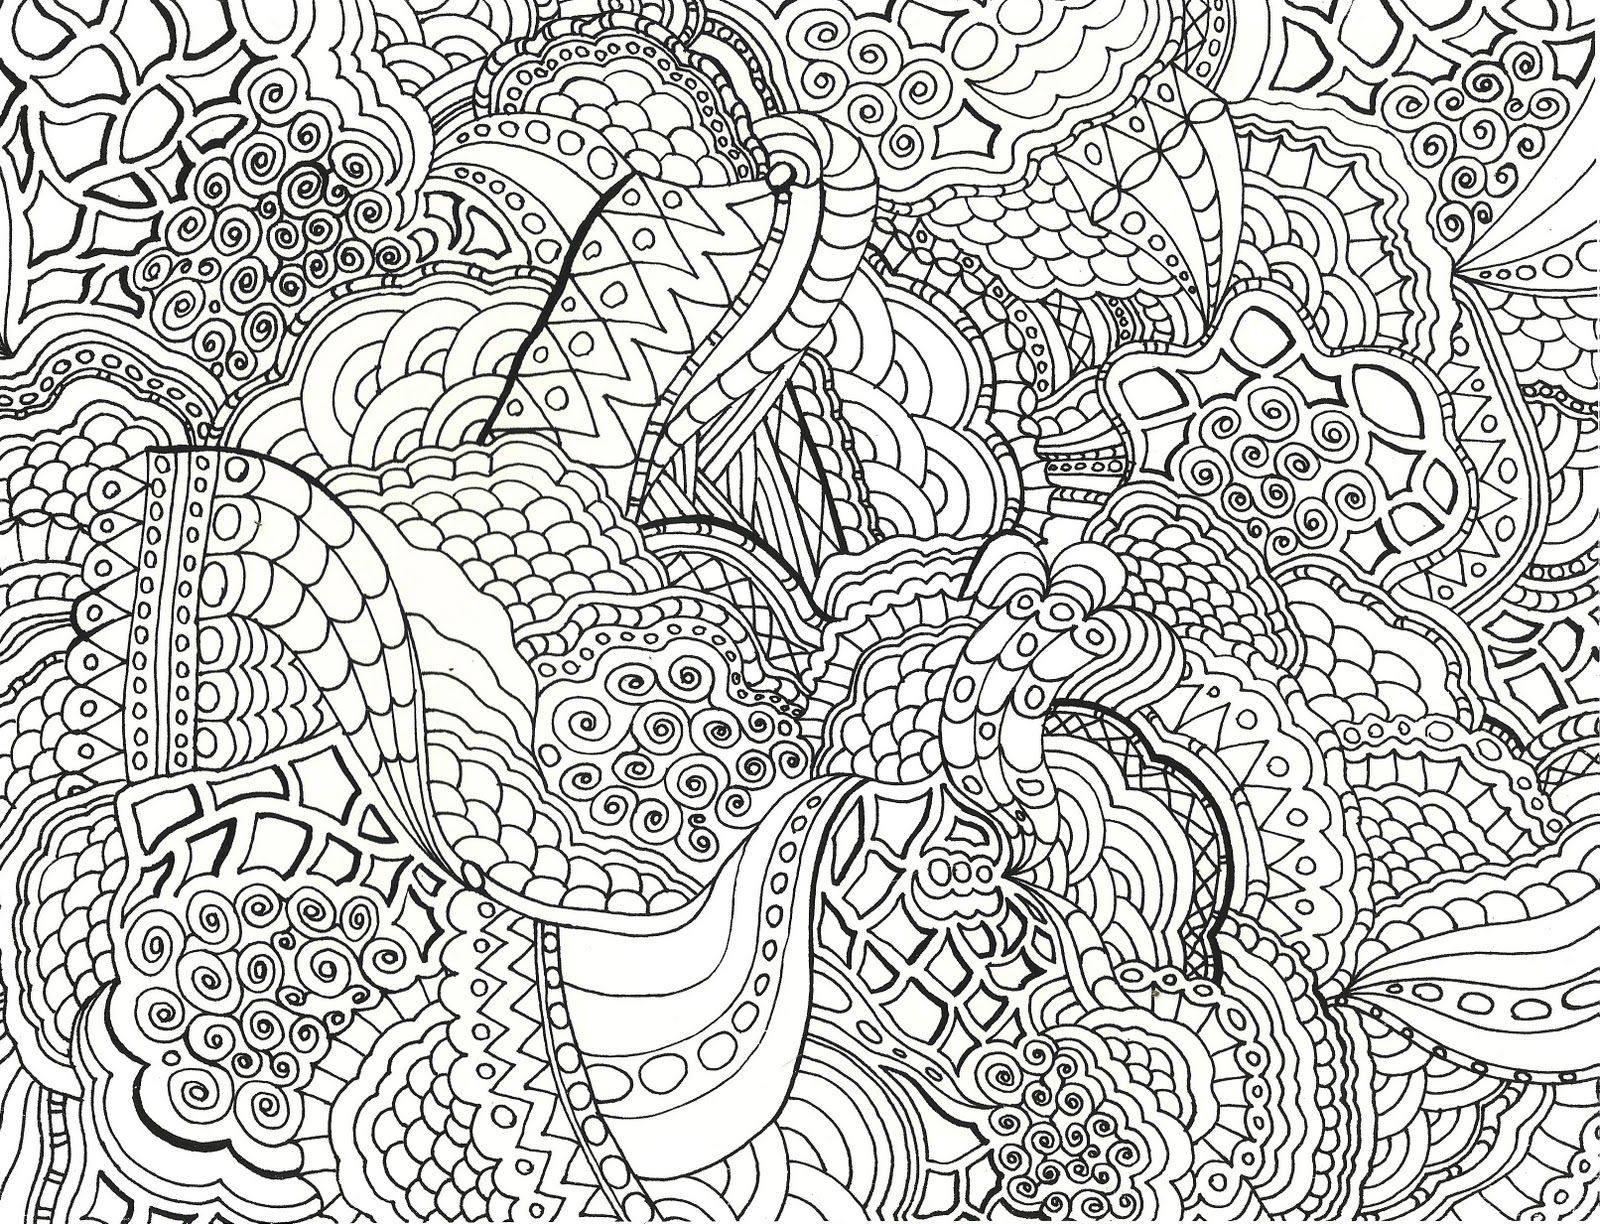 up coloring pages grown up coloring pages design colouring pages pinterest stress relief